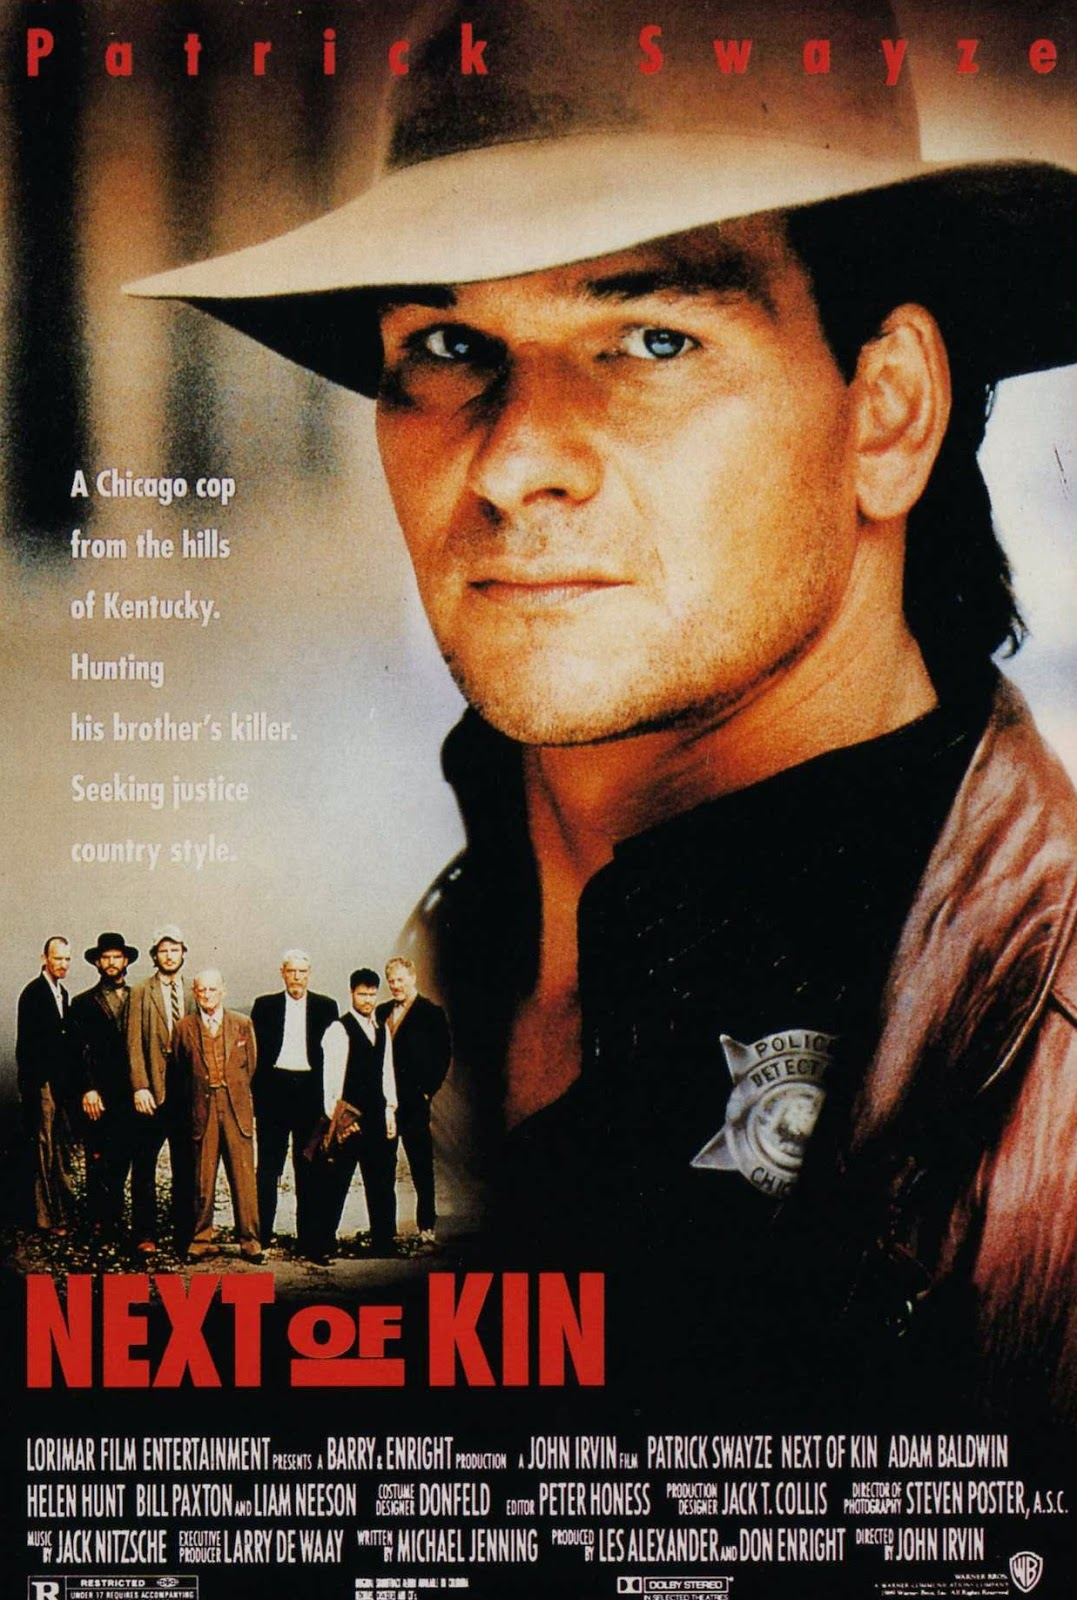 We Hate Movies: Episode 197 - Next of Kin